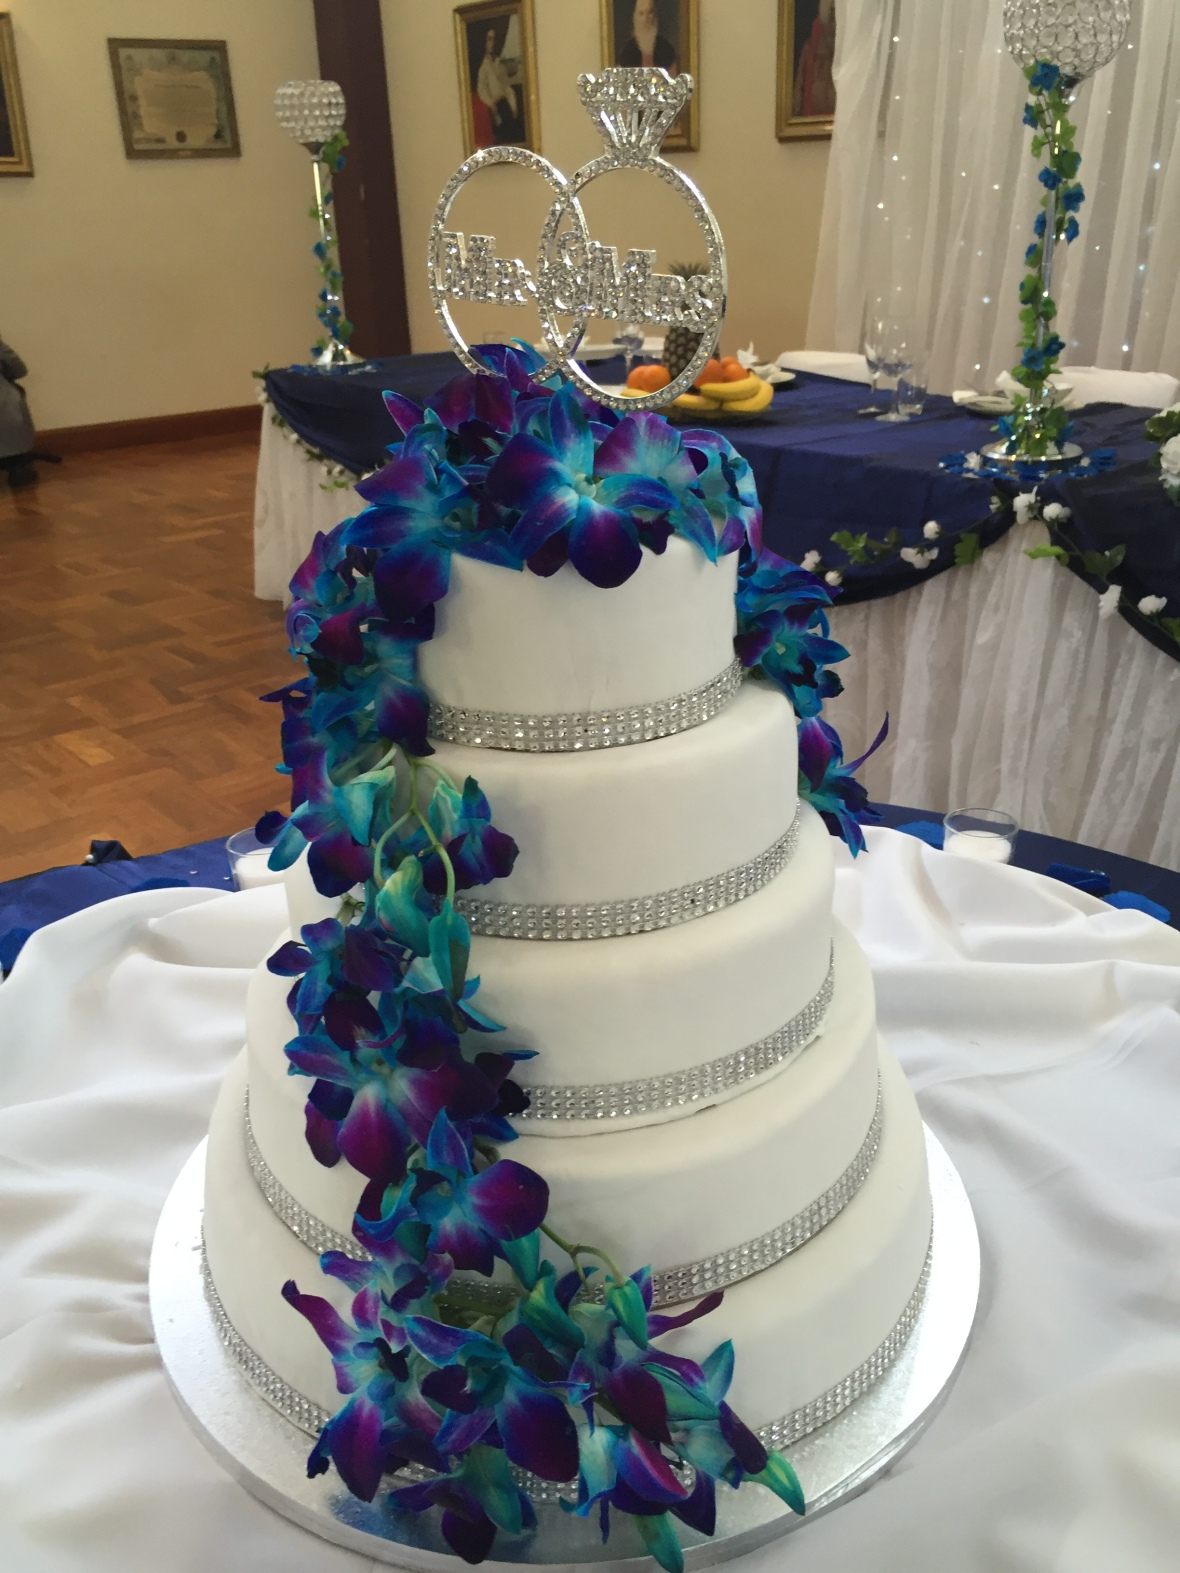 8Cakes Creating Custommade Cakes To Complement Your Special Day - Wedding Cakes Sydney West